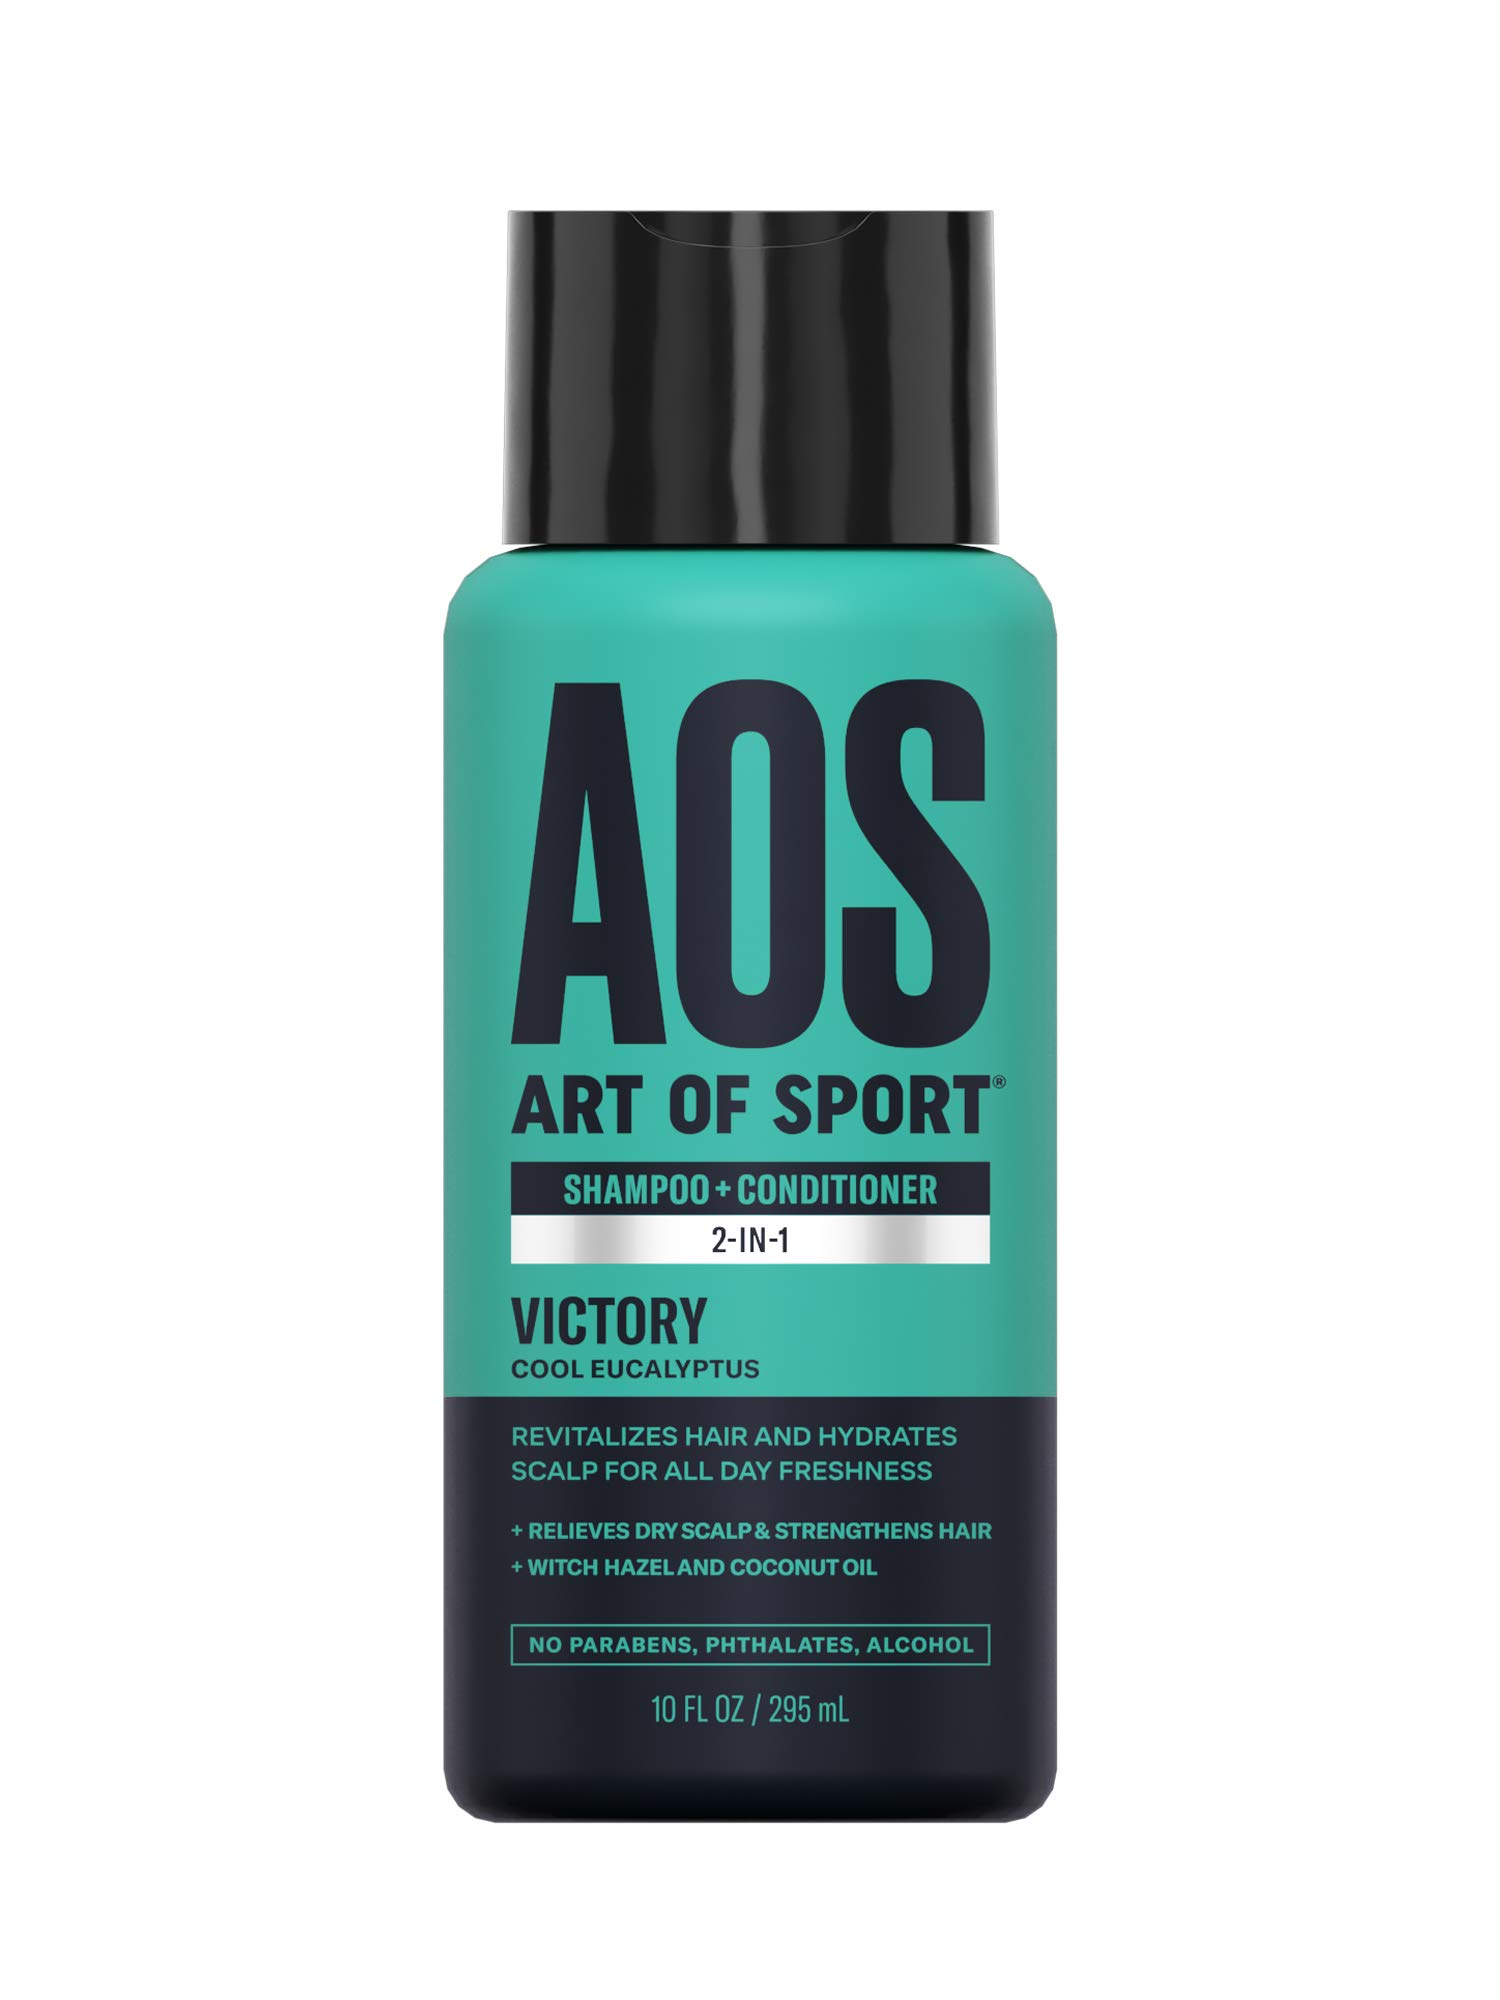 Art of Sport Sulfate Free Shampoo and Conditioner, Victory Scent, Men's Shampoo for Dry Scalp, Hair Strengthening with Hydrating Coconut Oil, For all Hair Types, 10 oz